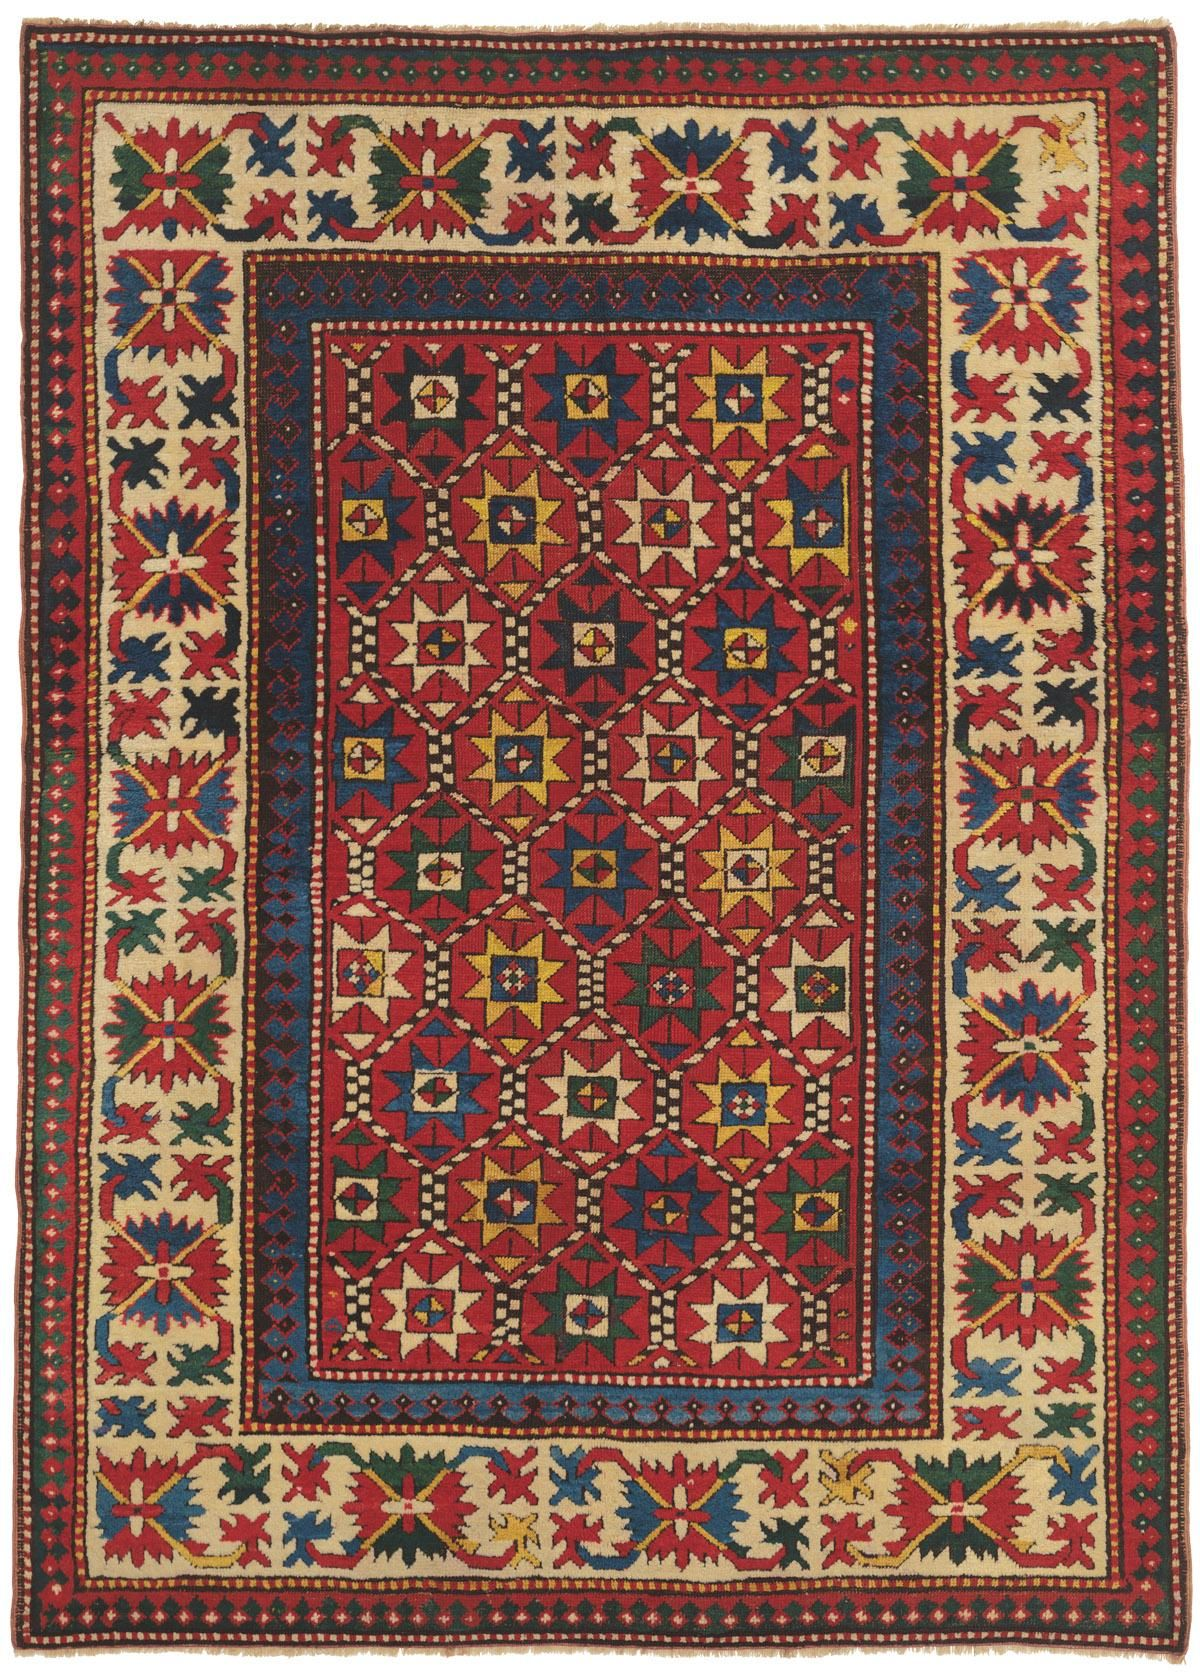 Caucasian Kazak, 4ft 8in x 6ft 6in, Circa 1900. Masterful use of color and dazzling elemental motifs bring a folkloric appeal to this collectible Kazak rug. A riveting palette that includes prized saffron yellow, radiant cobalt blue, clear ivory, azure and forest green energizes each dynamic sunburst-like 'Star of Wisdom' on the deeply saturated carnelian red ground. The deft use of abrash striation, most notable in the inner border, adds a luminous depth to the composition.